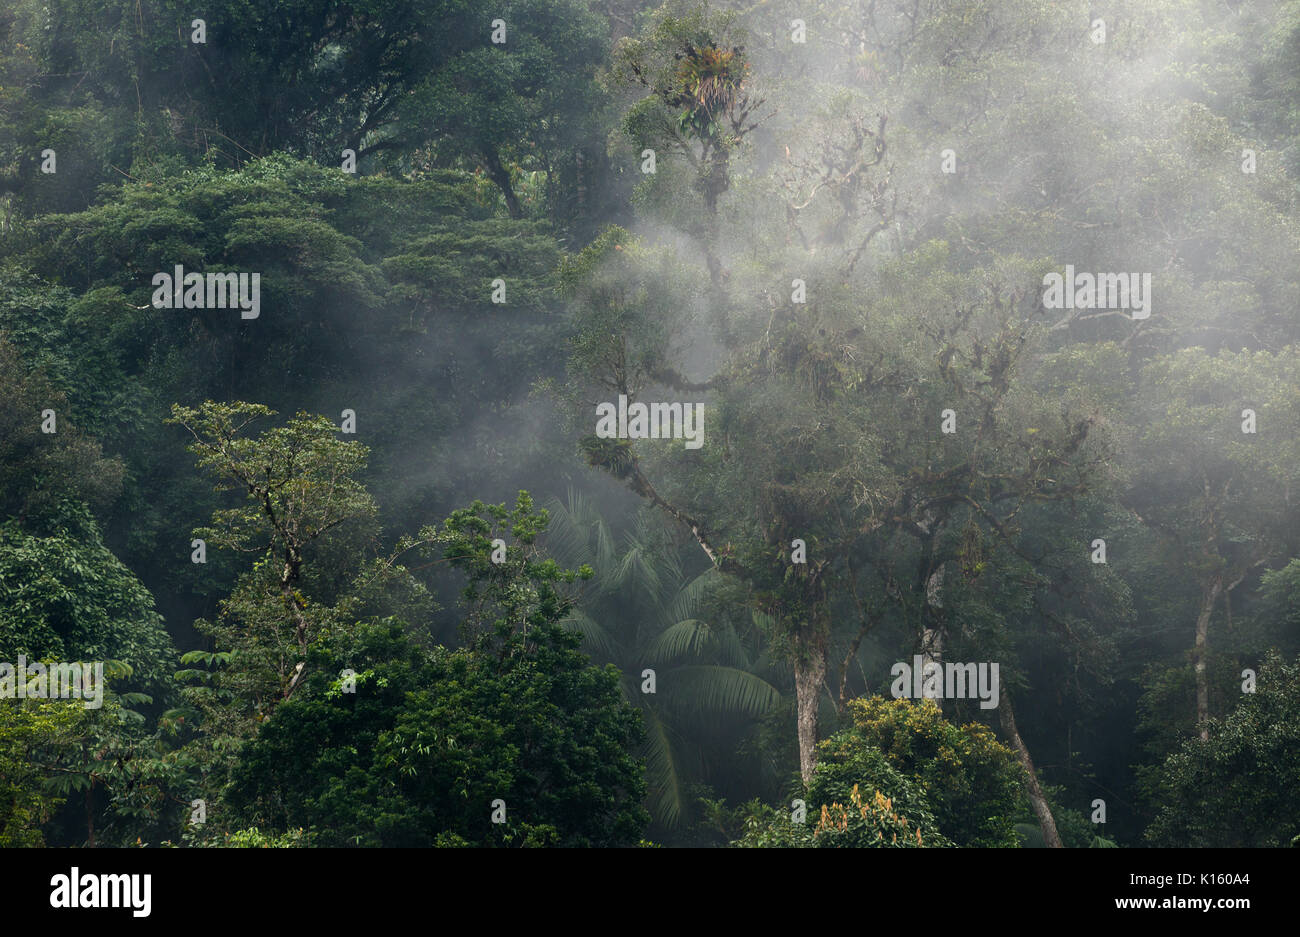 Humidity mist covering the Atlantic Rainforest - Stock Image